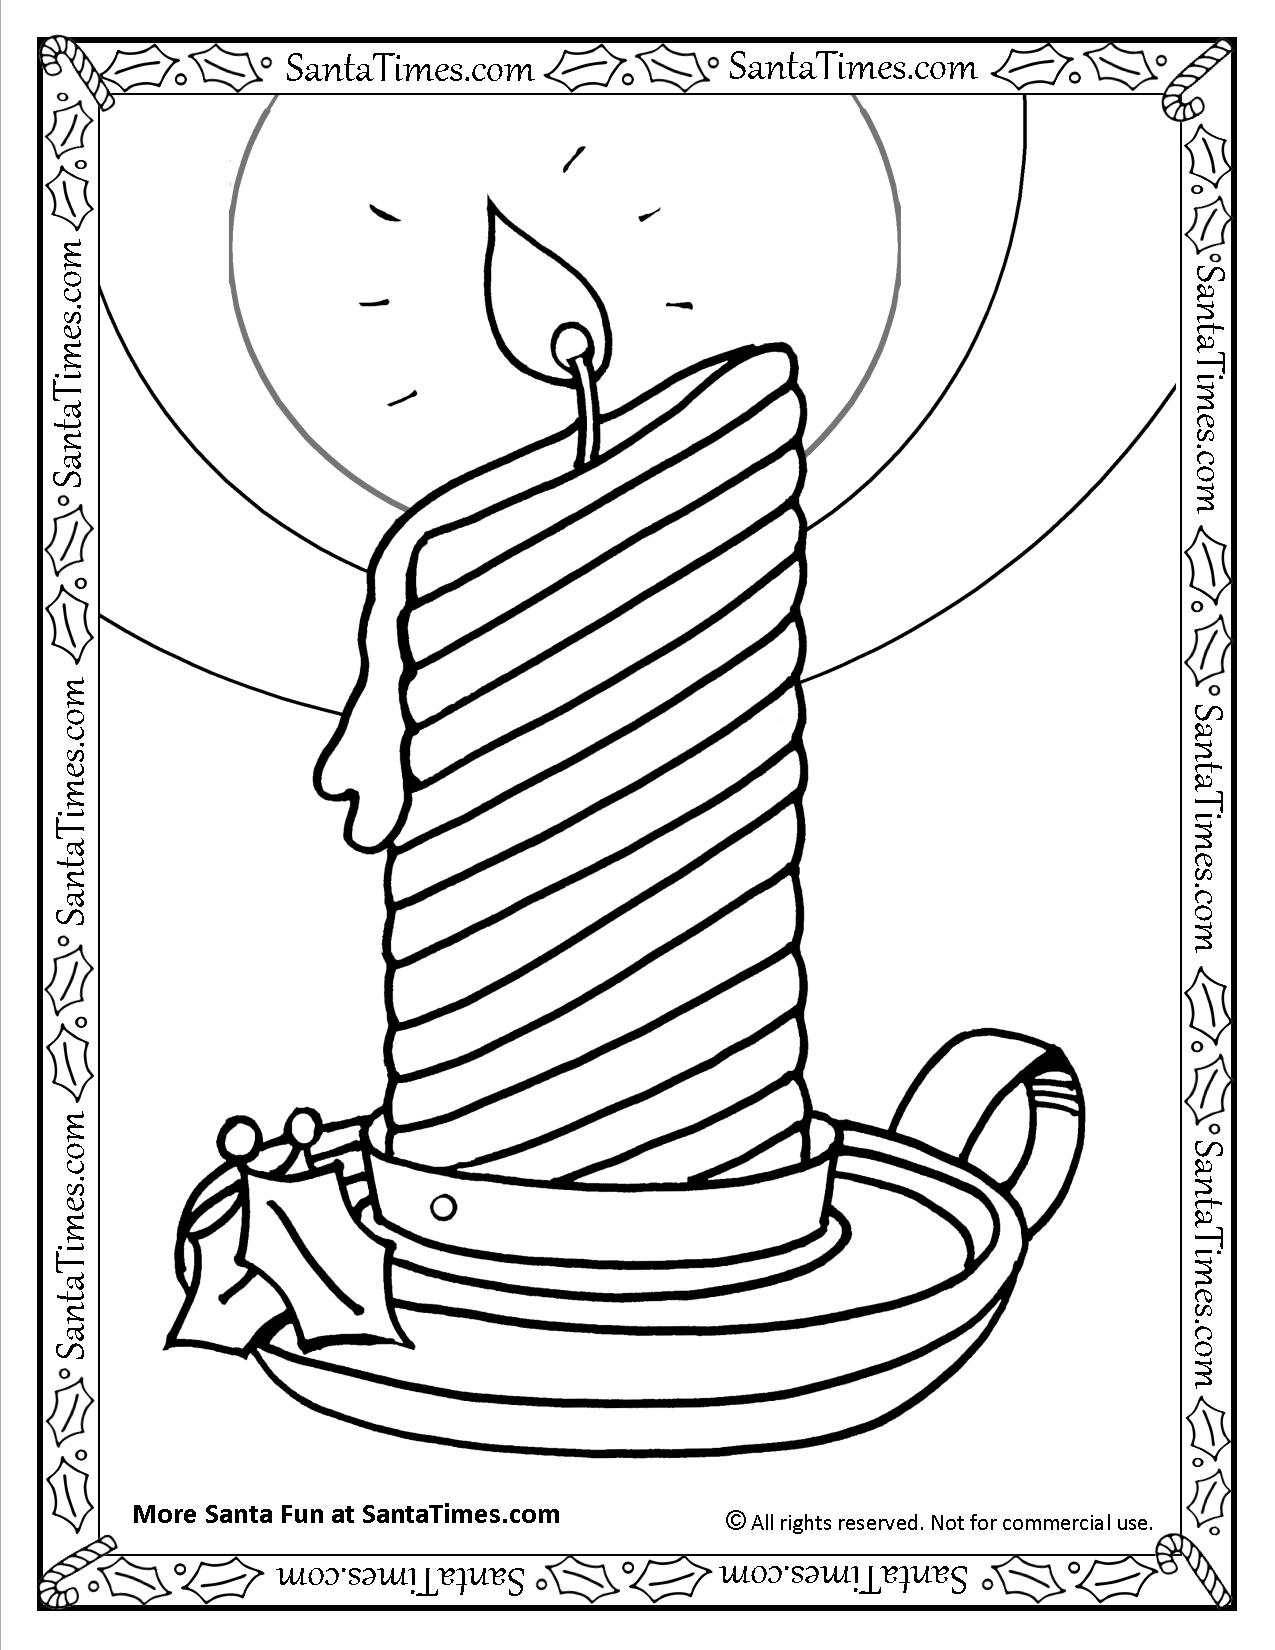 candles coloring pages - photo#23